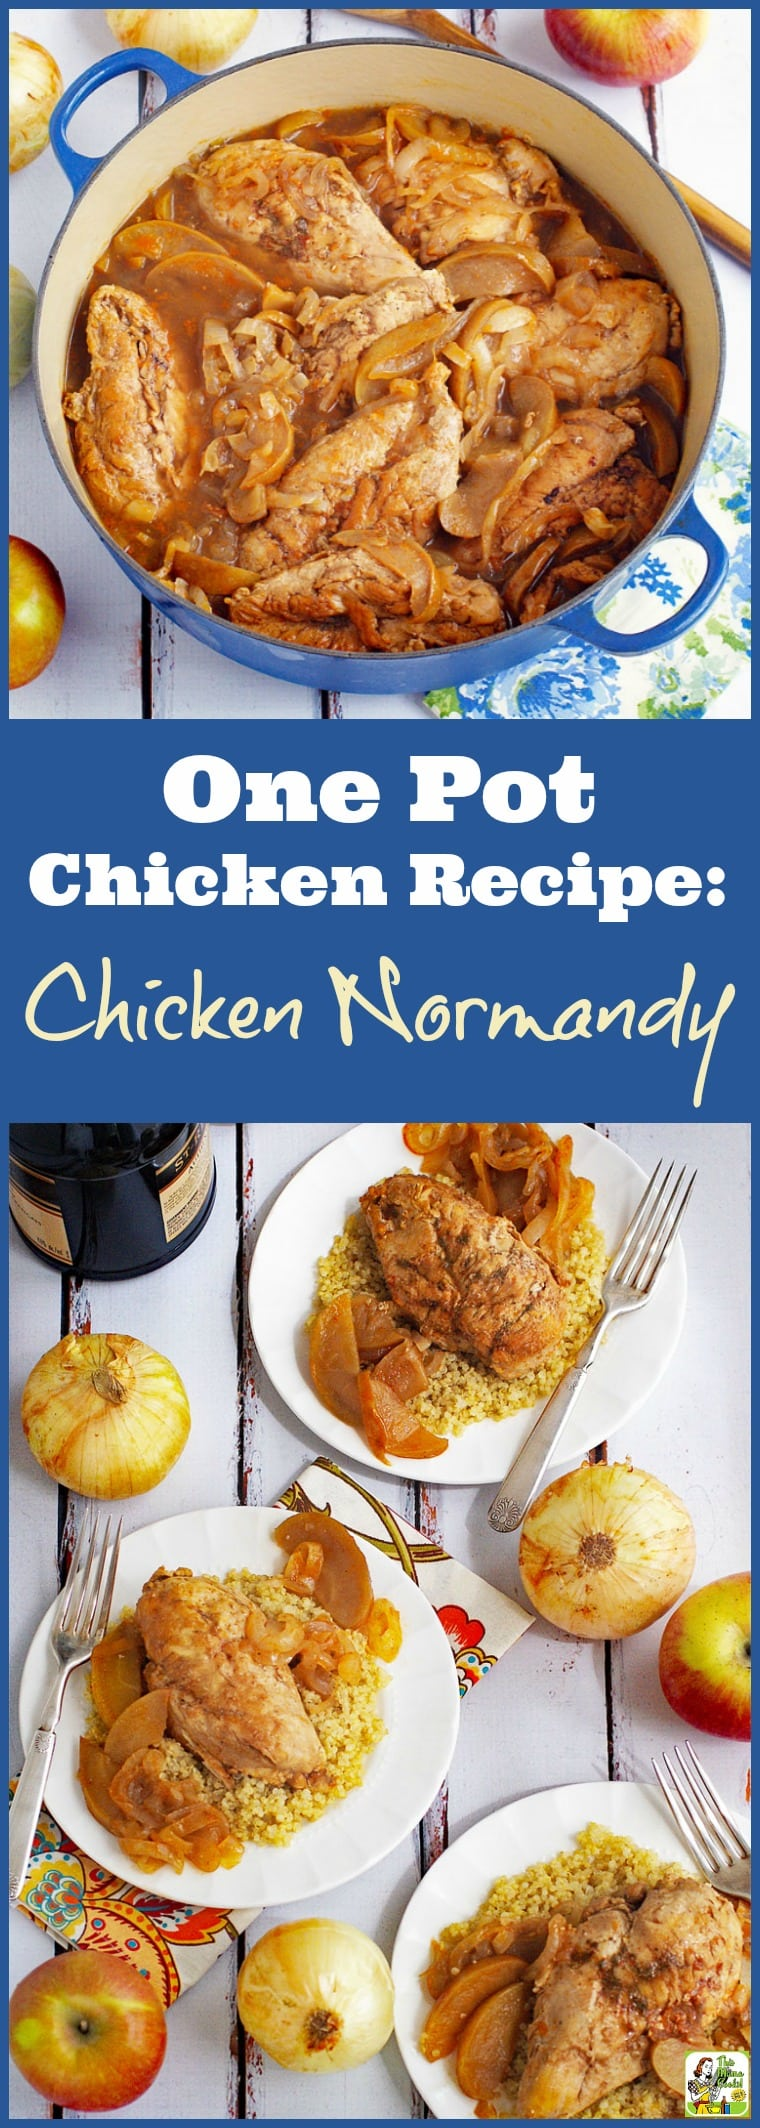 Chicken Normandy à la Marie-Celine. This easy one pot chicken recipe is made with apples, onions, and brandy. Serve on rice, quinoa, gluten free noodles, or wild rice. Naturally gluten-free. #recipes #easy #recipeoftheday #glutenfree #easyrecipe #easyrecipes #glutenfreerecipes #dinner #easydinner #dinnerrecipes #dinnerideas #chicken #chickenfoodrecipes #chickenrecipes